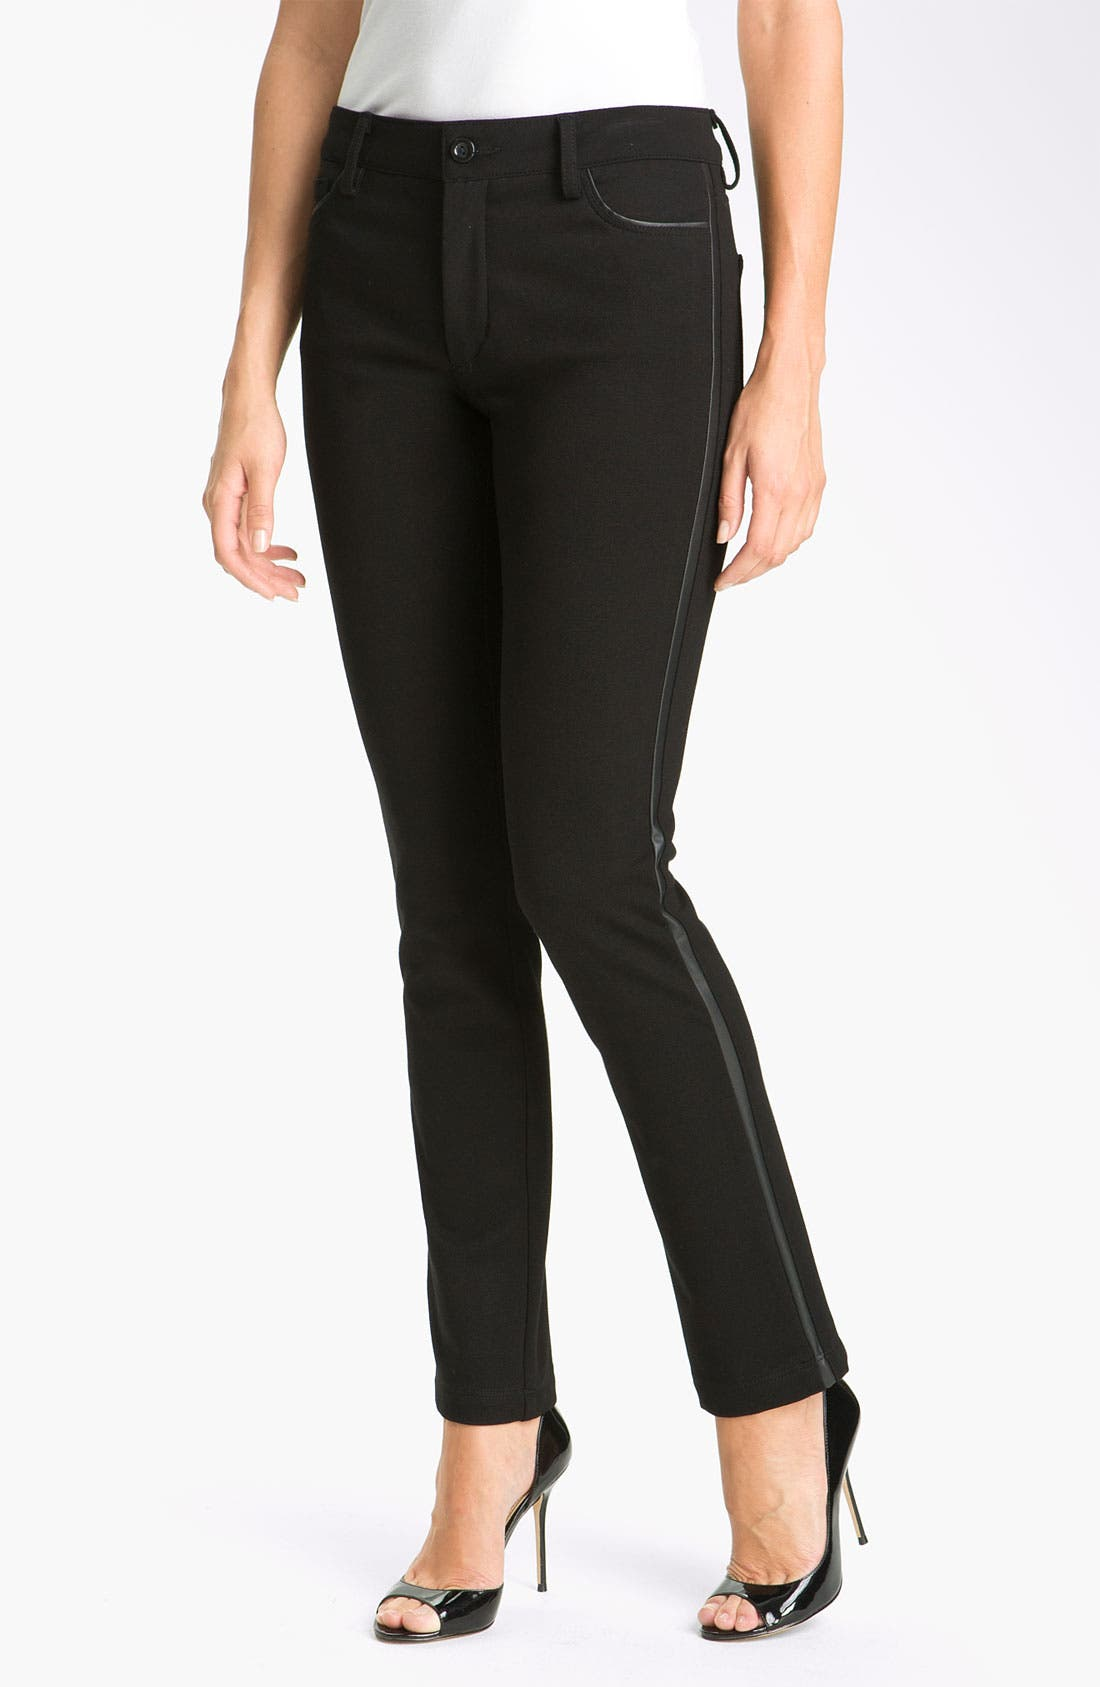 Alternate Image 1 Selected - NYDJ 'Pamela' Skinny Stretch Ponte Pants